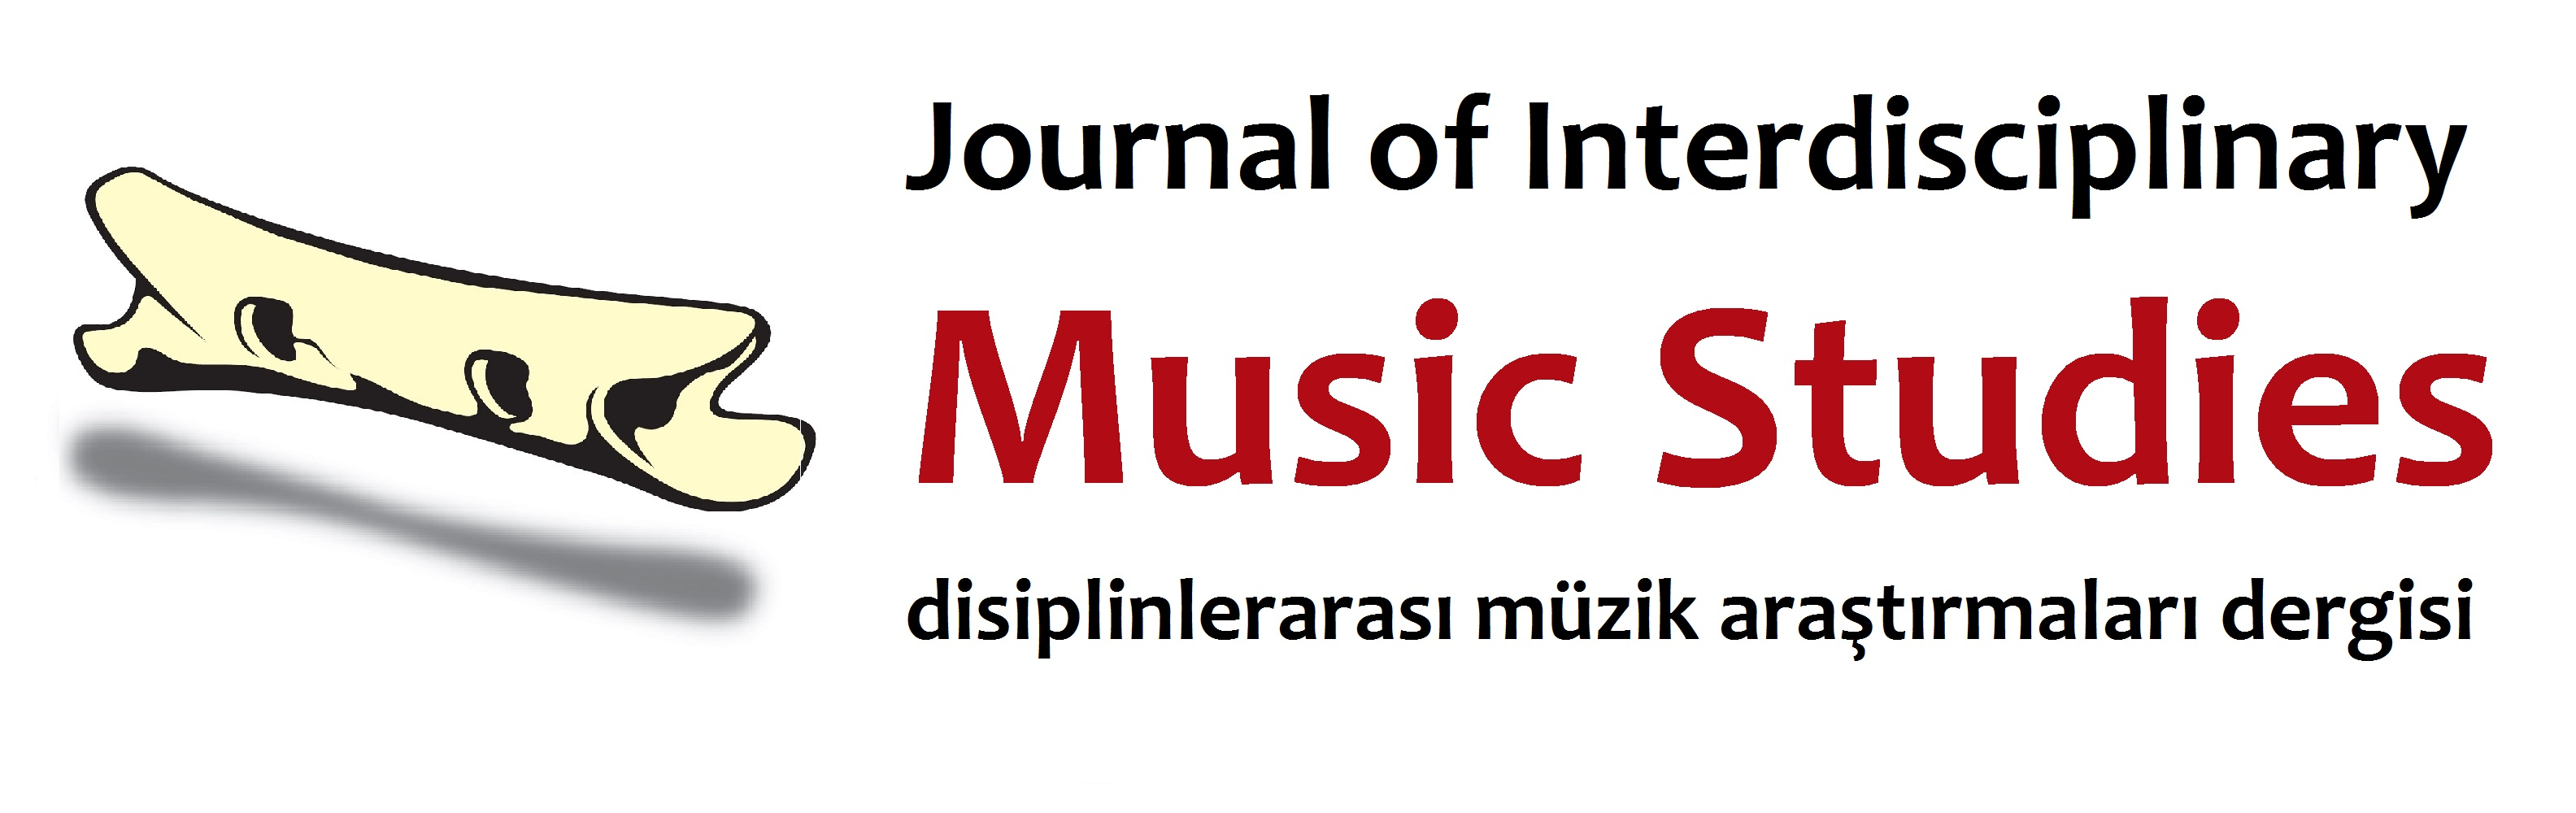 Journal of Interdisciplinary Music Studies